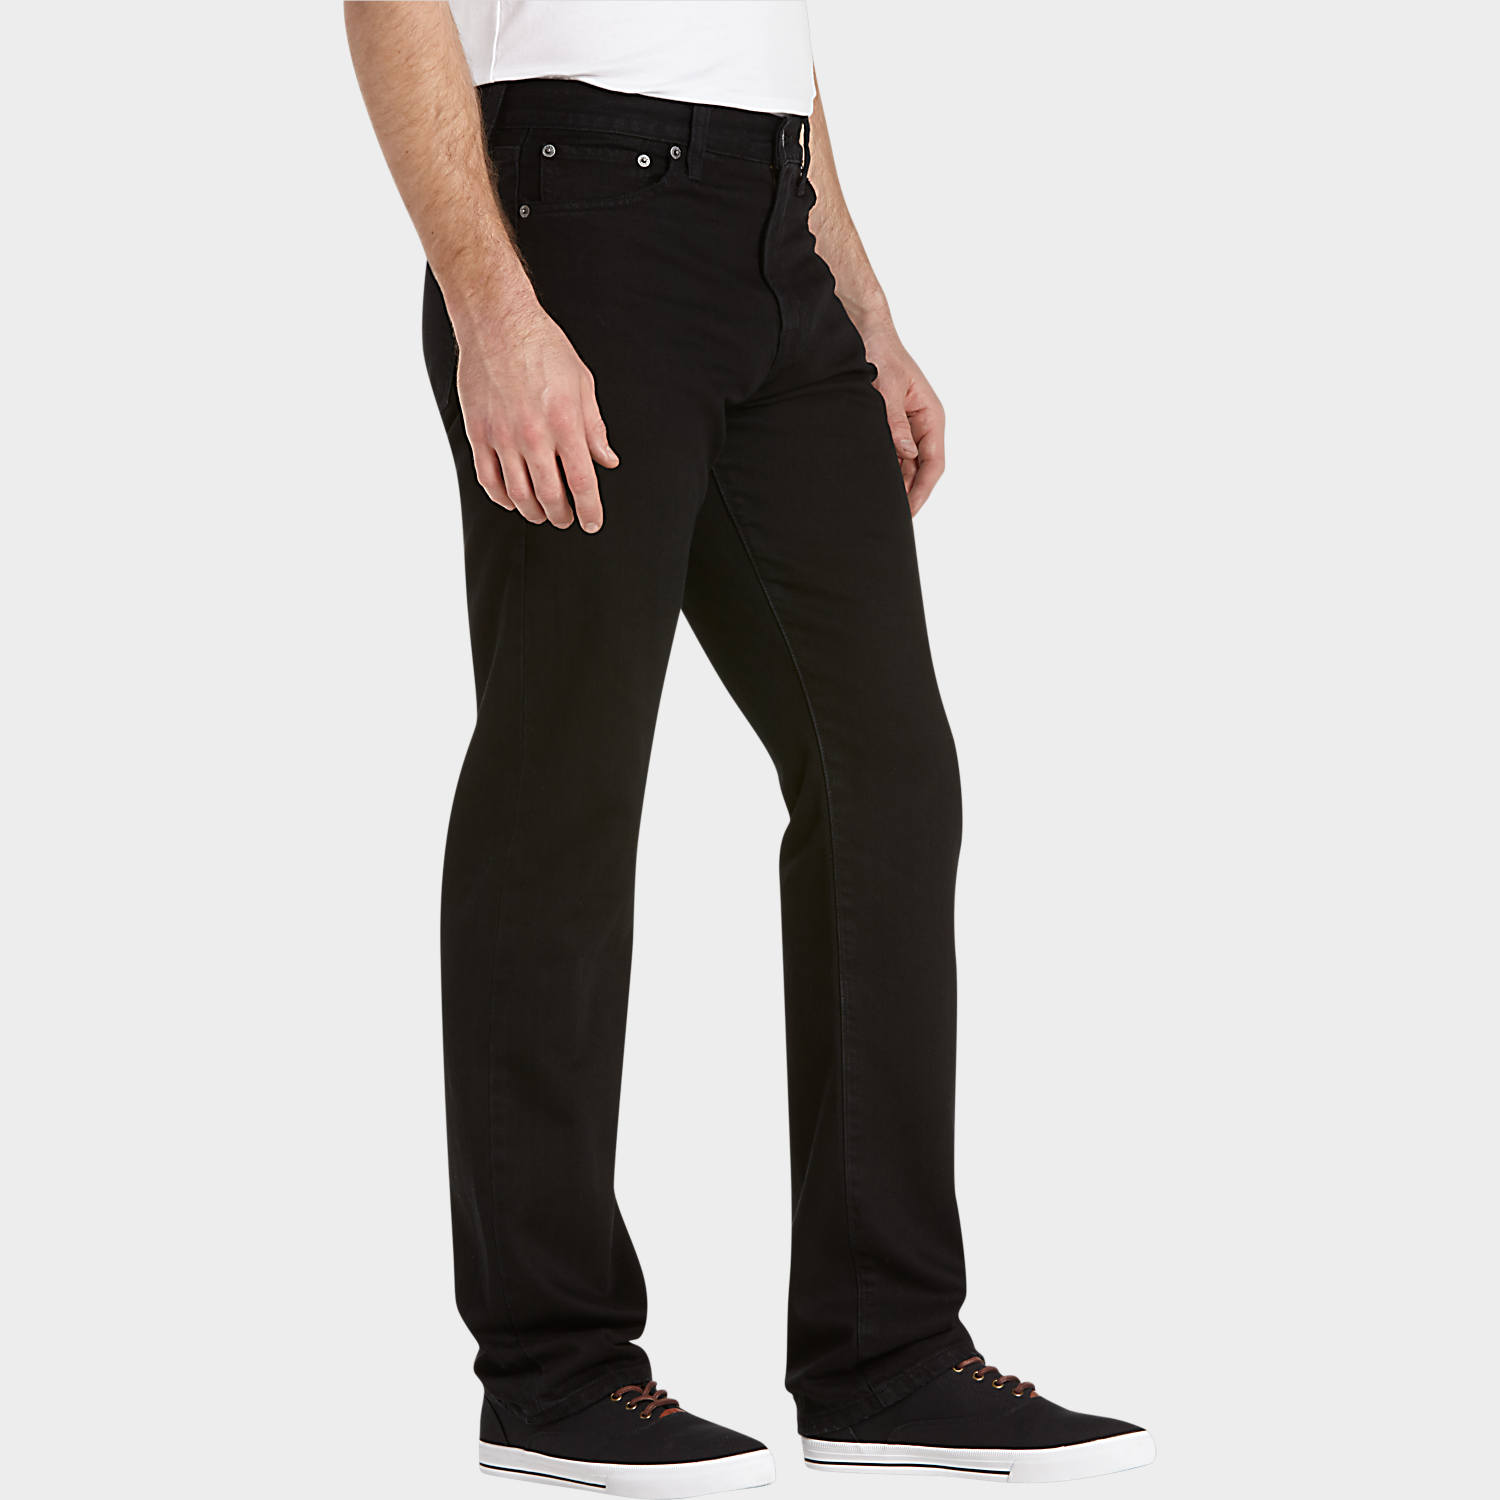 Lucky Brand Jeans 329, Logborro Black Classic Fit Jeans - Men's ...